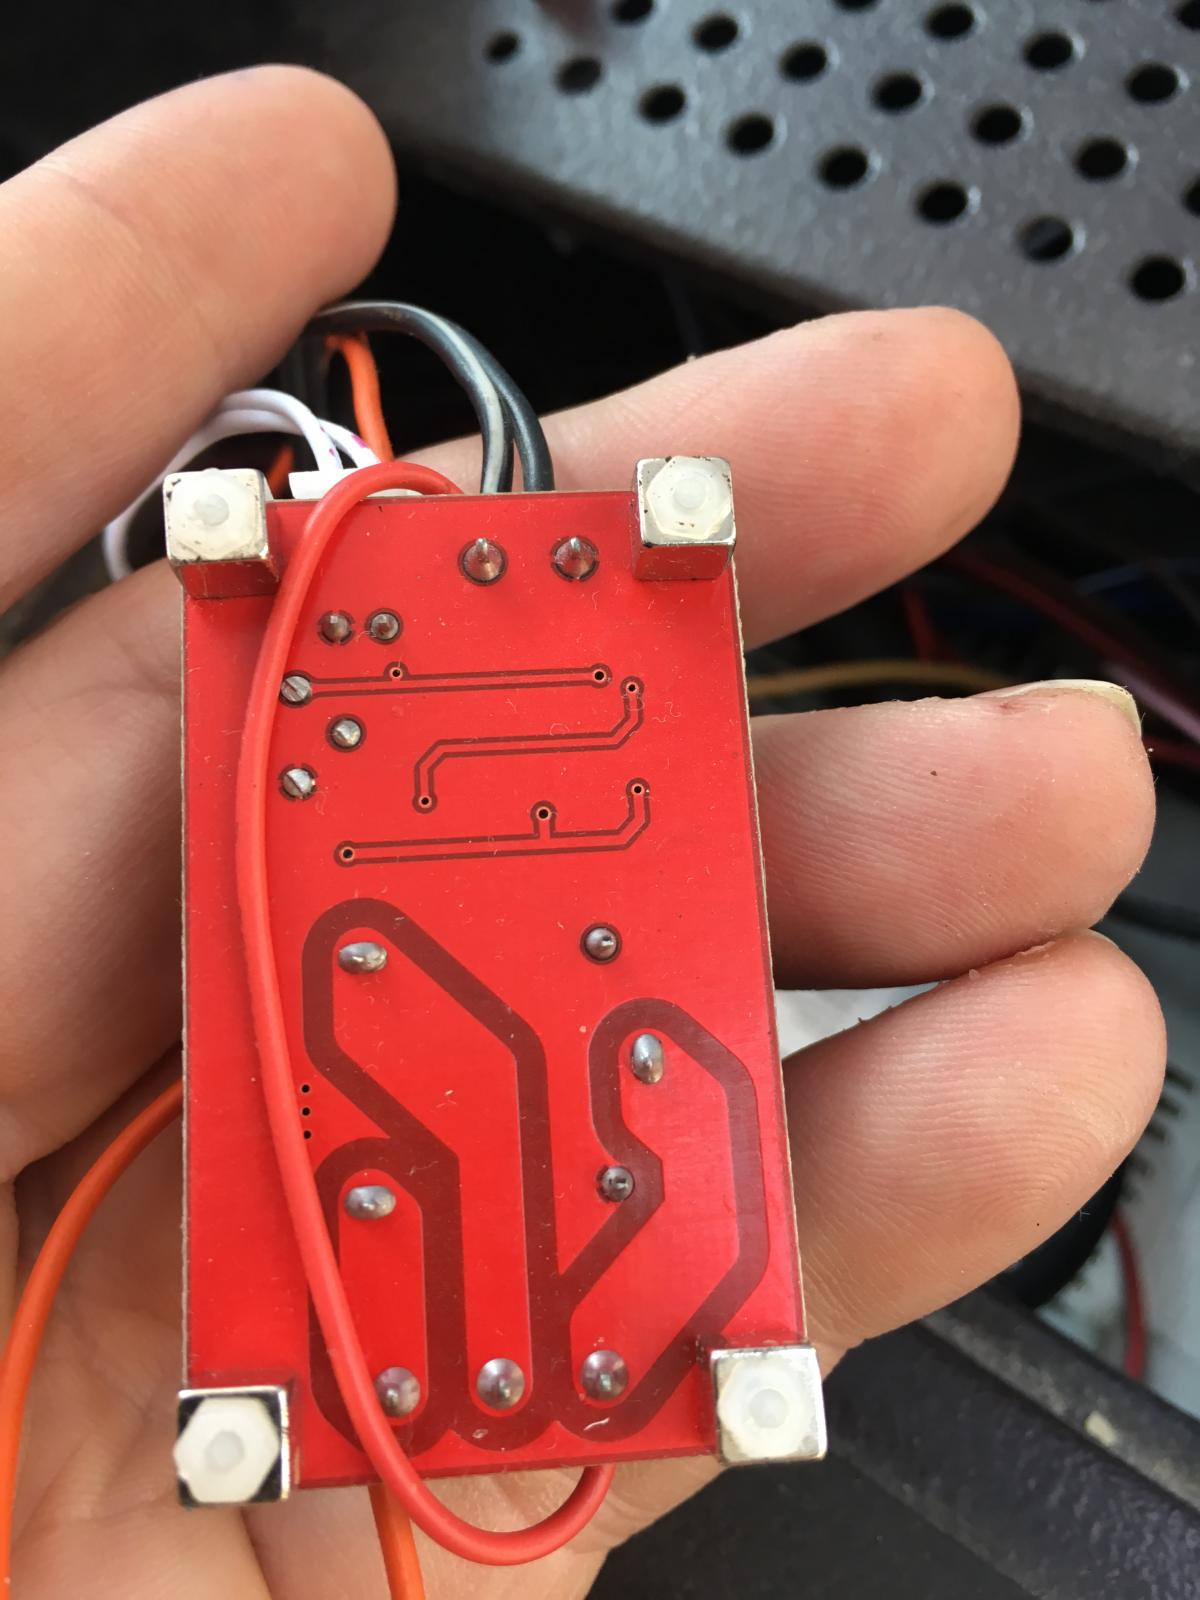 Photodetector clock stereo display dimmer